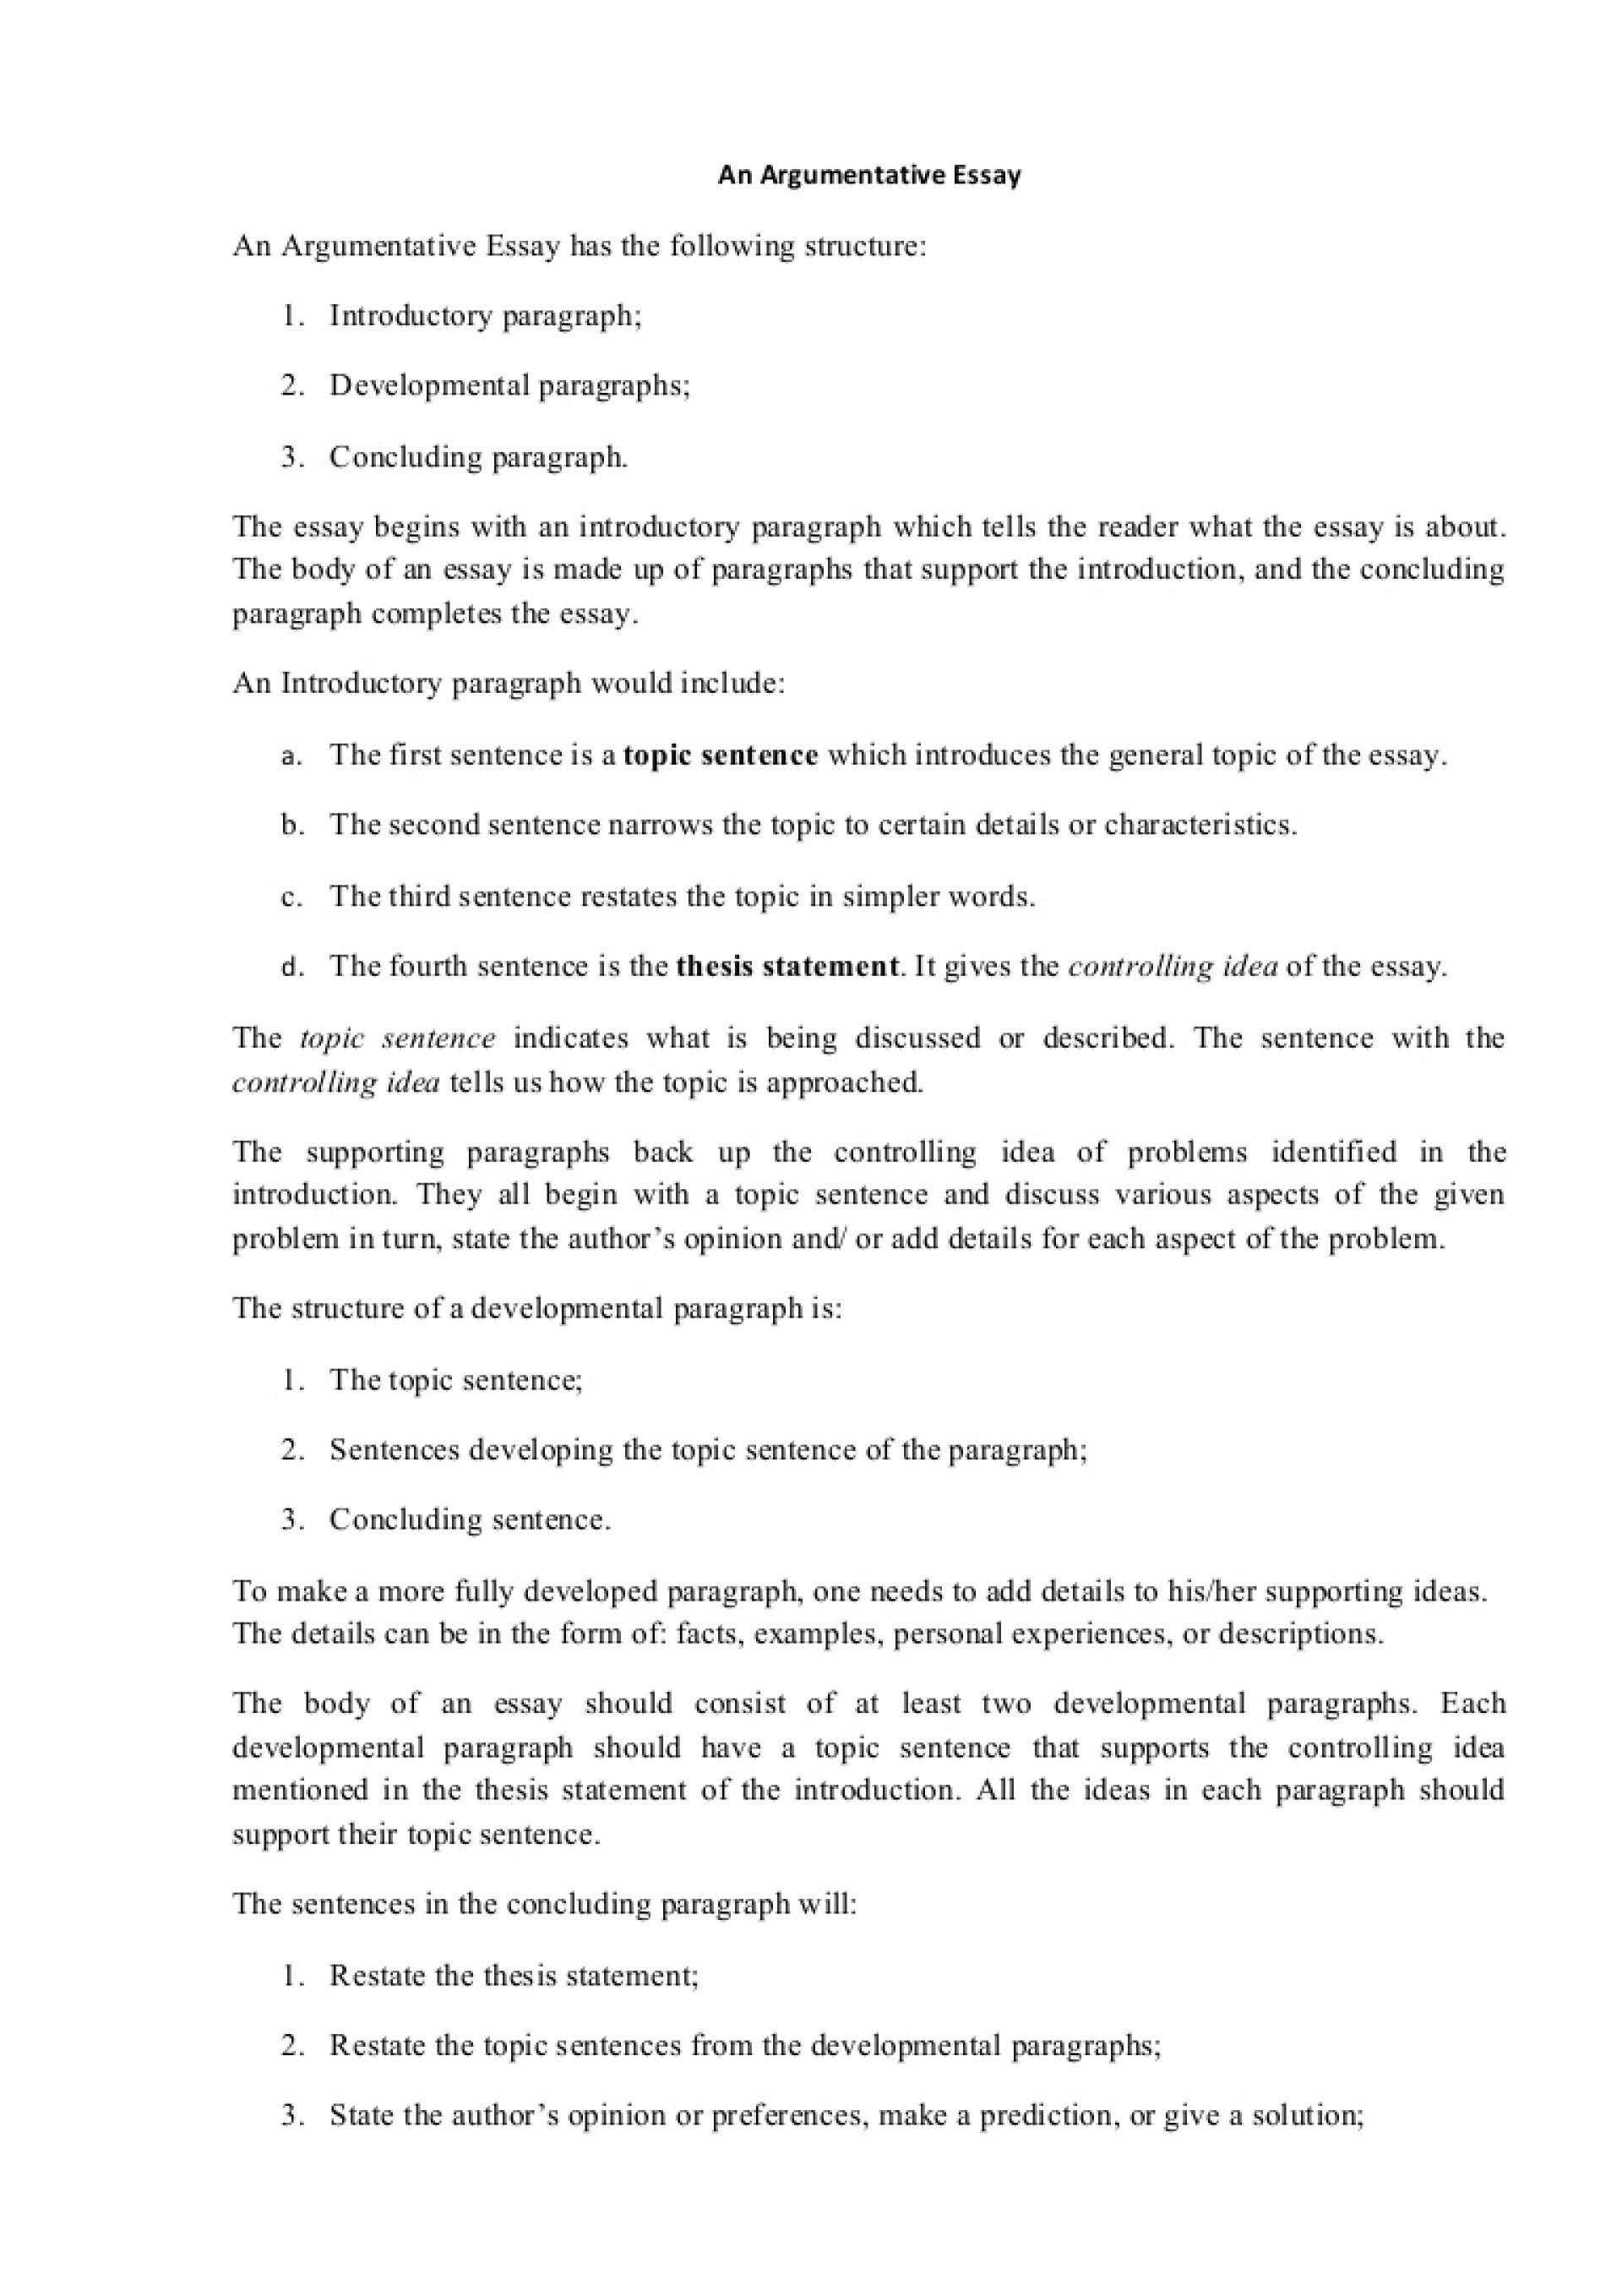 014 Example Of Argumentative Essay Conclusion Argumentativeessaystructure Phpapp01 Thumbnail Beautiful Introduction Body And 1920